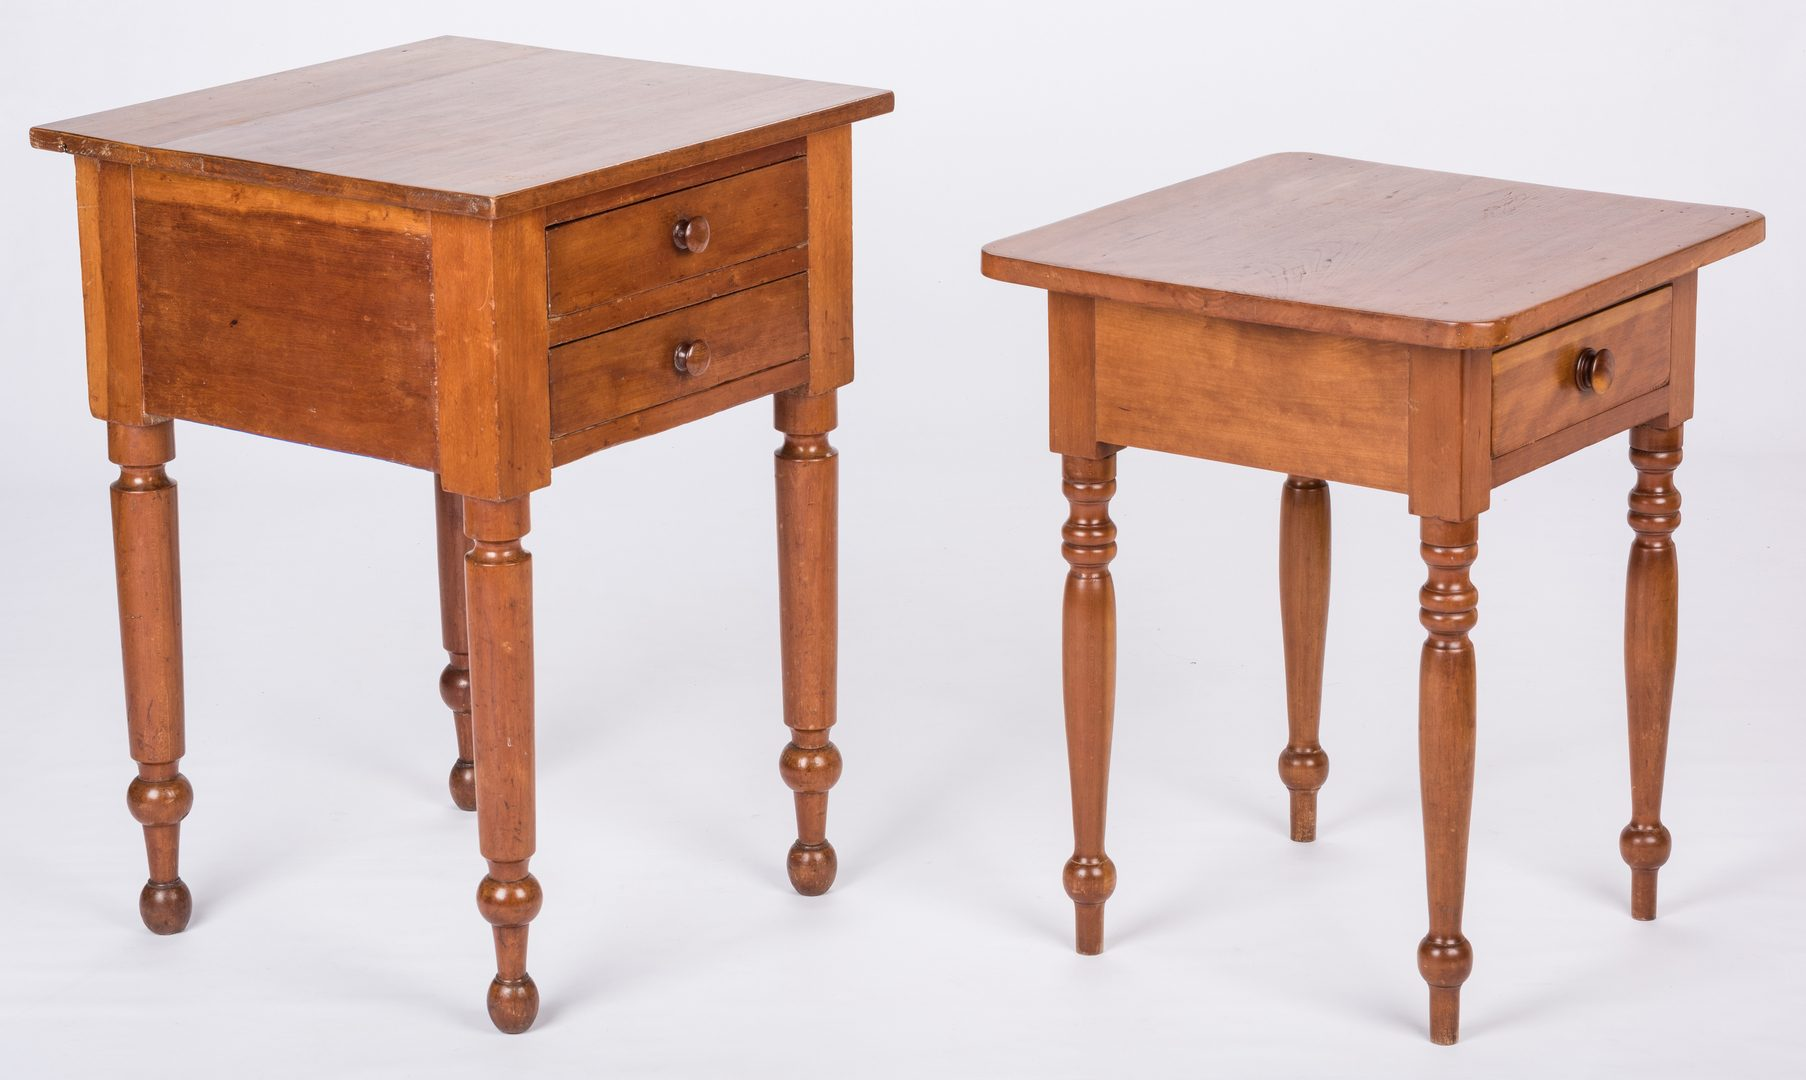 Lot 634: 2 Southern Work Tables, inc. Greene County, TN